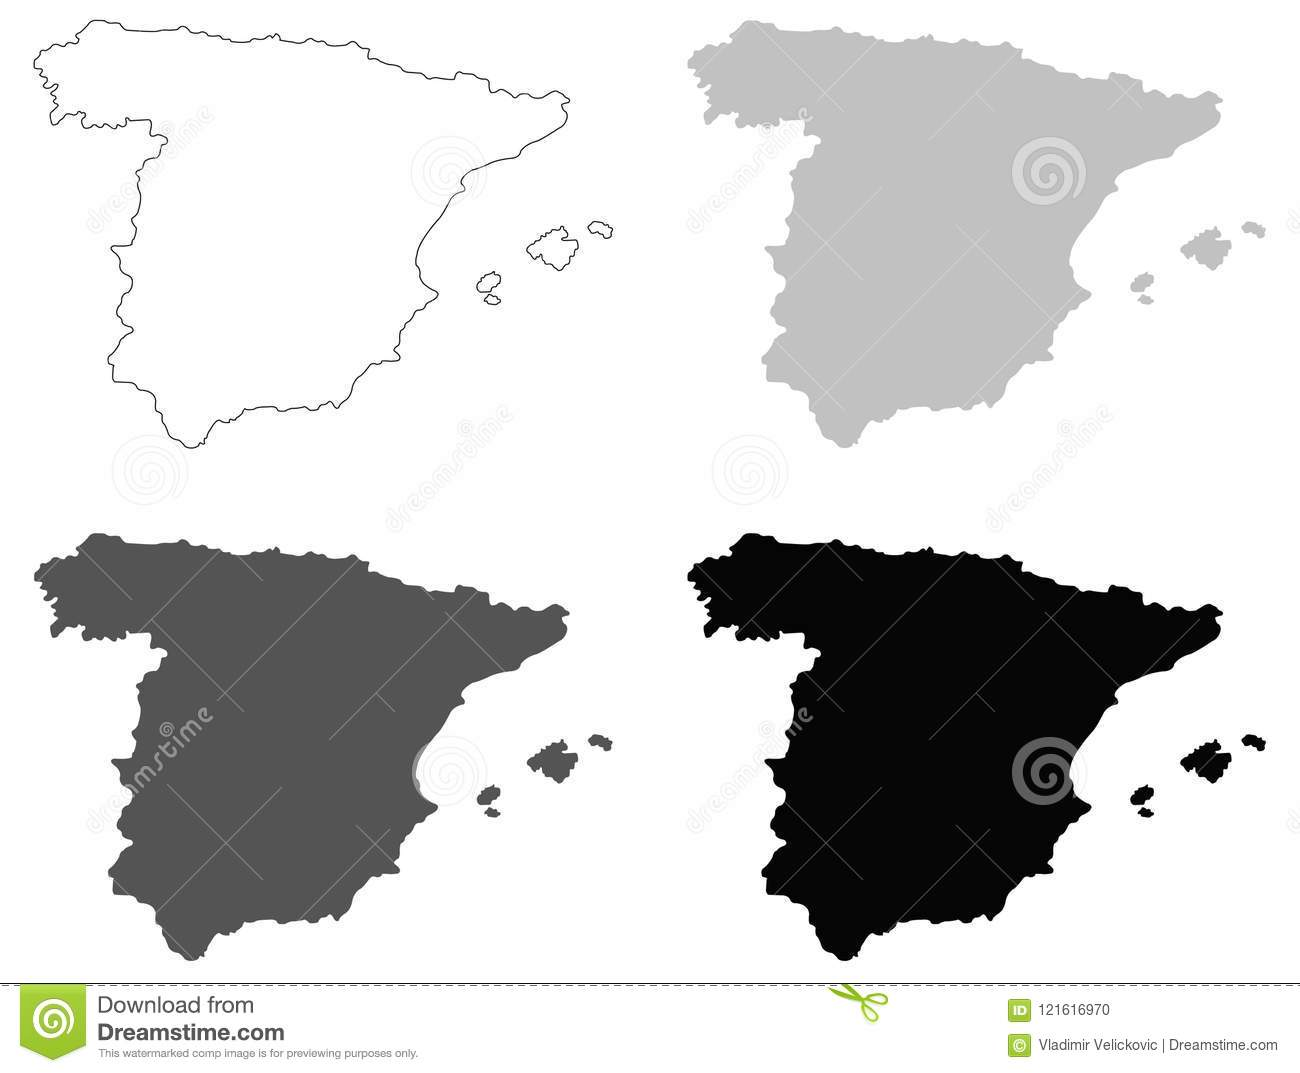 Spain Map - Sovereign State On The Iberian Peninsula In ...